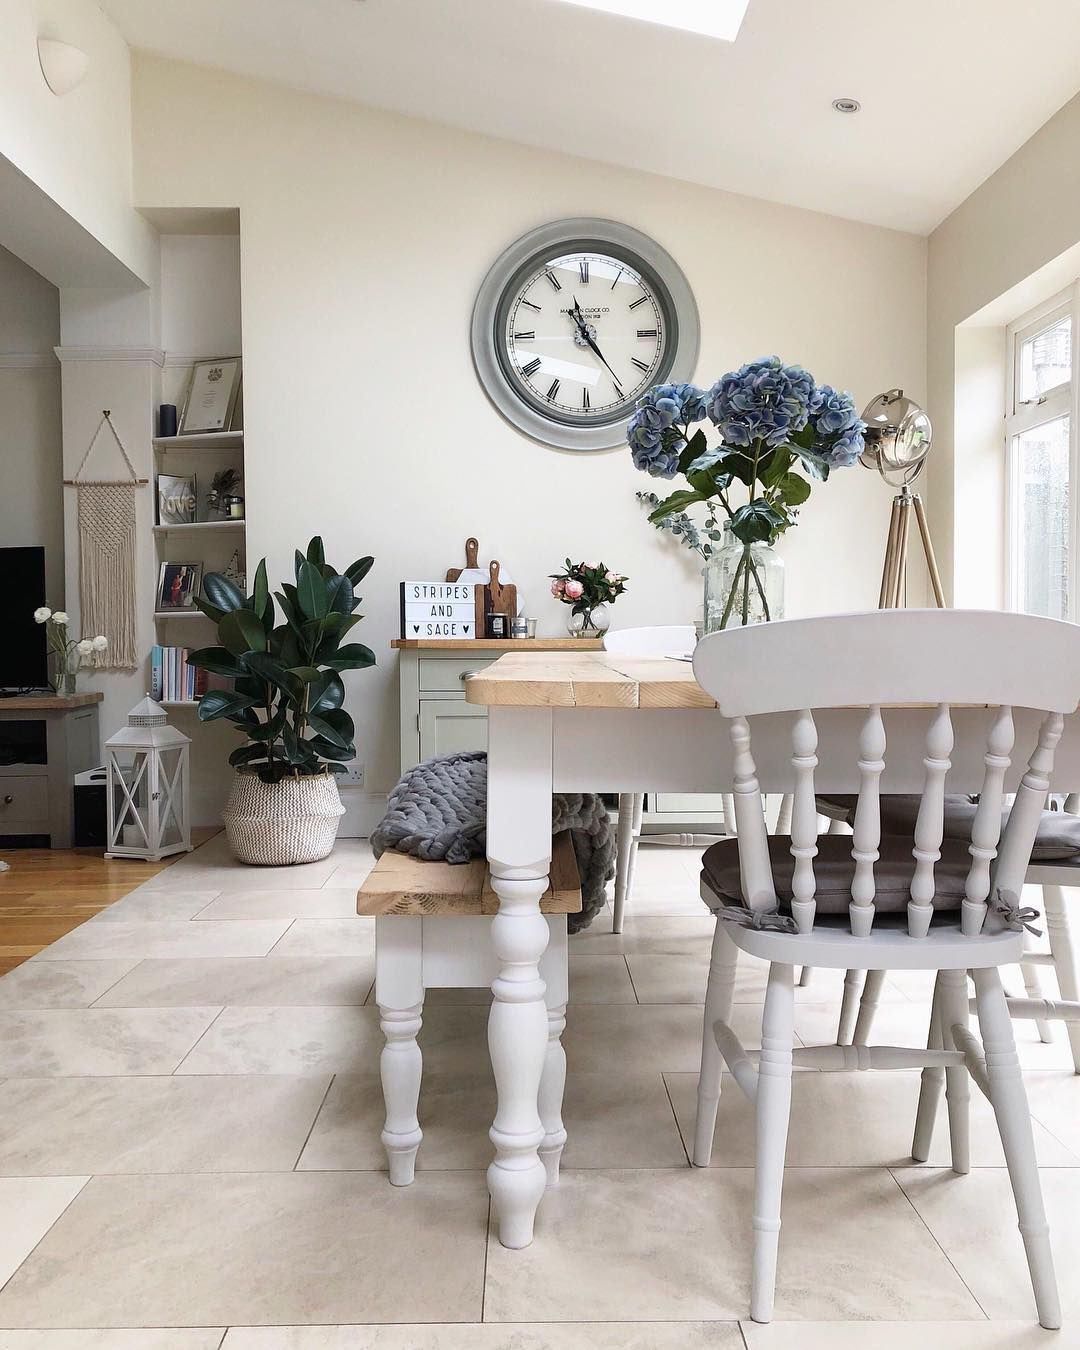 Pin By Debbie Evans On Deco Ideas In 2019: Pin By Debbie Rundall On 《~`Home Decorating `~》 In 2019